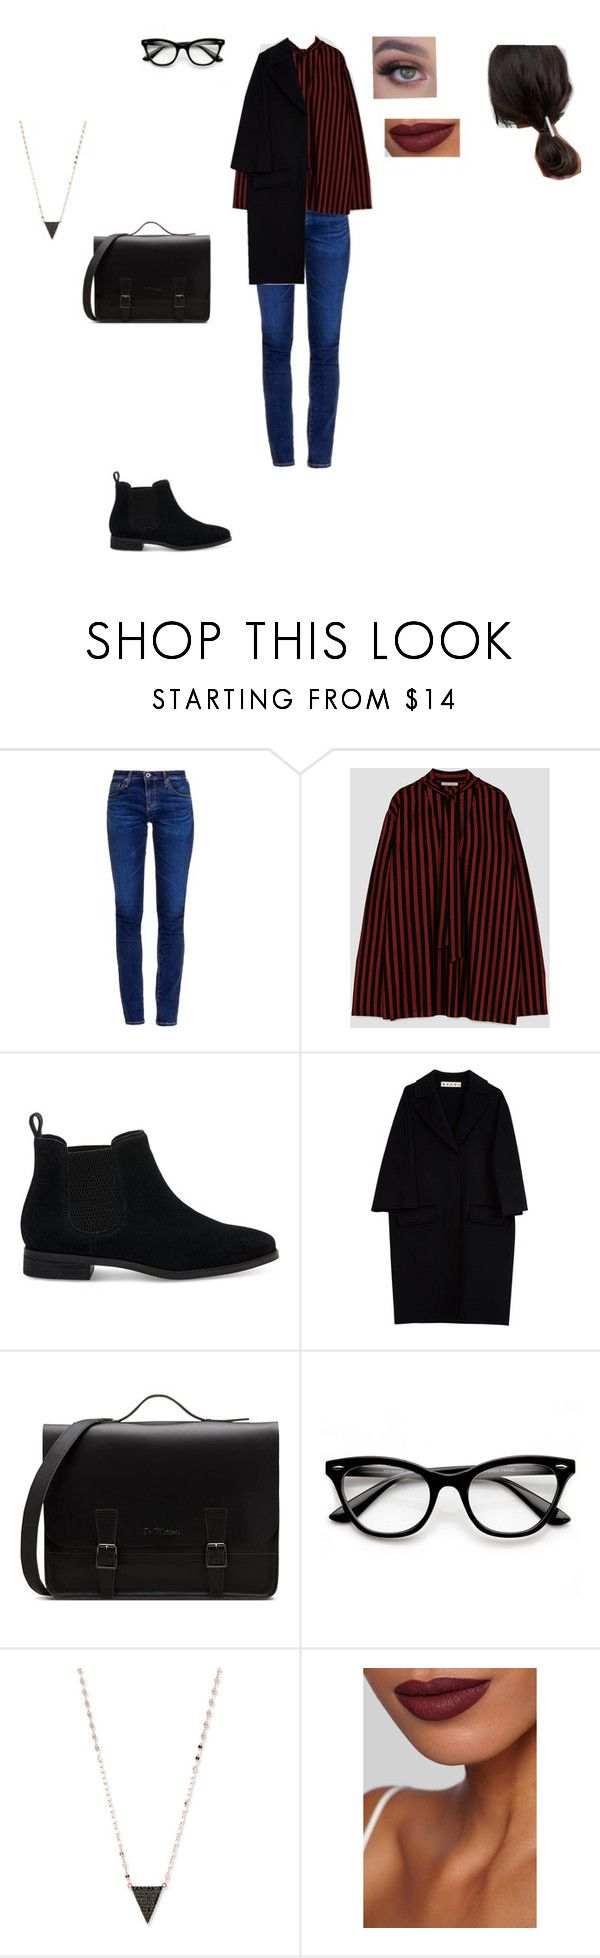 """Casual Outfit"" by helena94-1 on Polyvore featuring AG Adriano Goldschmied, TOMS, Marni, ZeroUV, Lana, Burberry, ASOS and polyvorefashion"